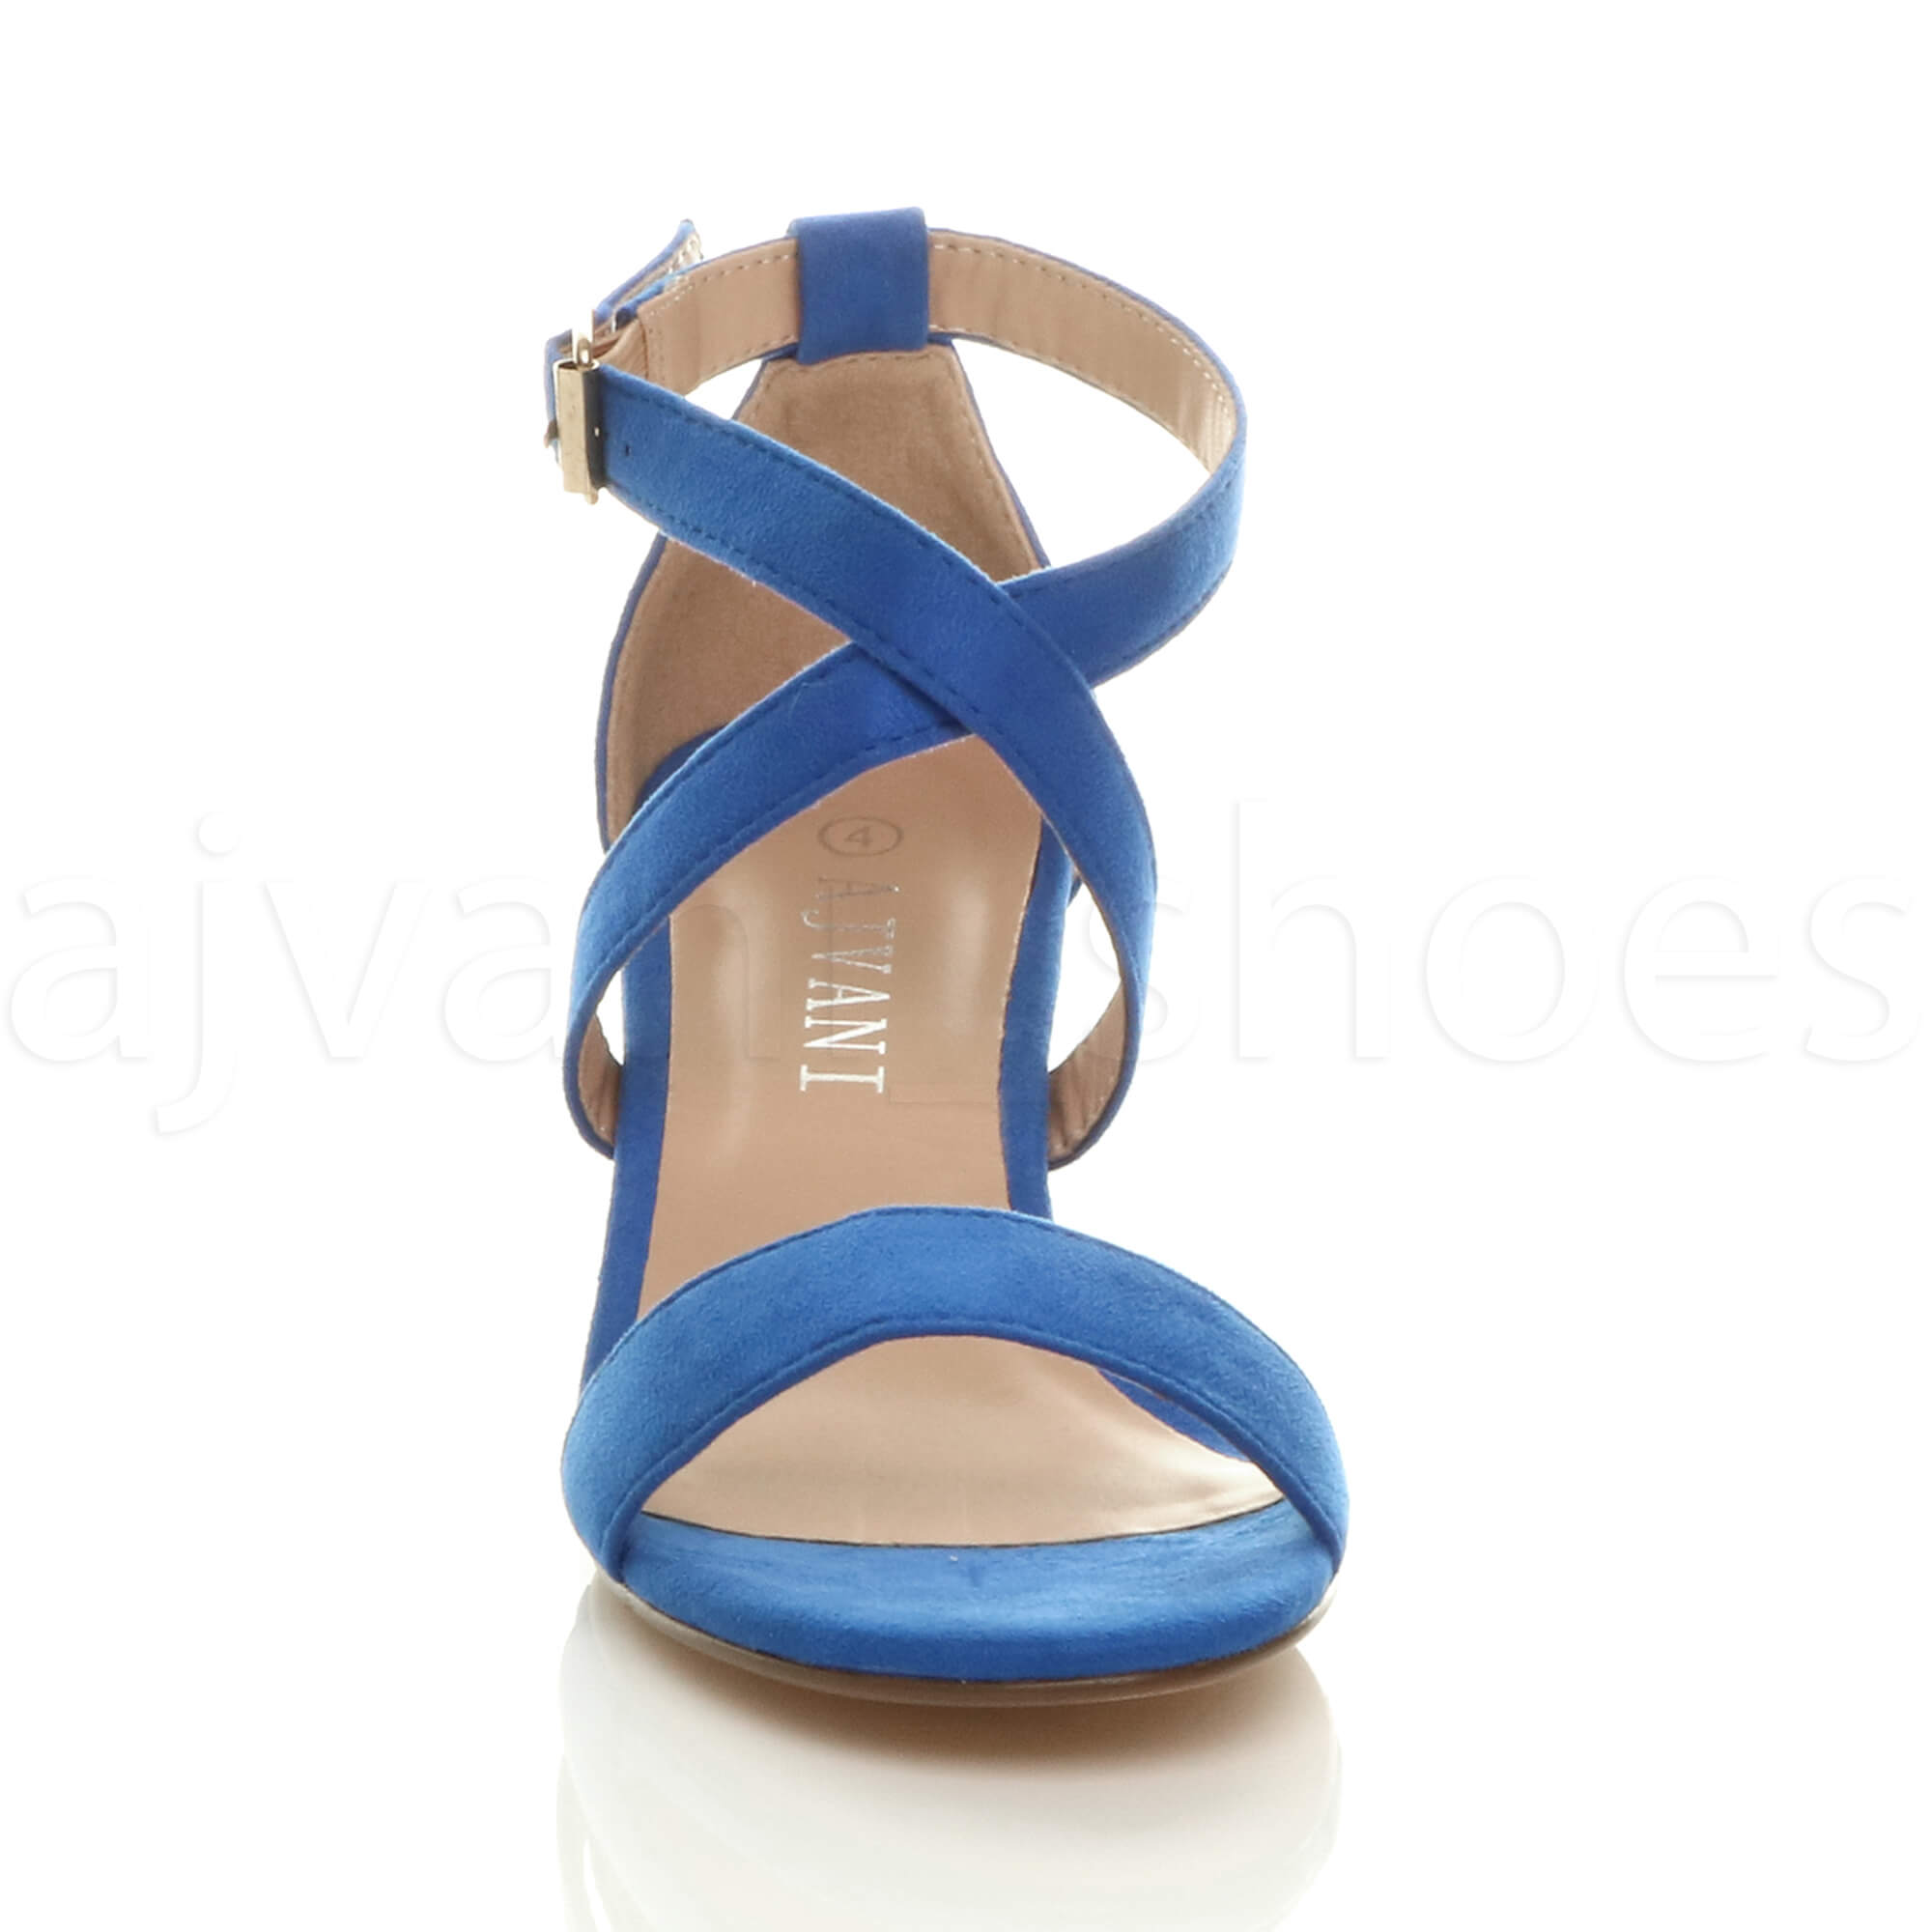 WOMENS-LADIES-MID-LOW-BLOCK-HEEL-CROSS-STRAPS-PARTY-STRAPPY-SANDALS-SHOES-SIZE thumbnail 17